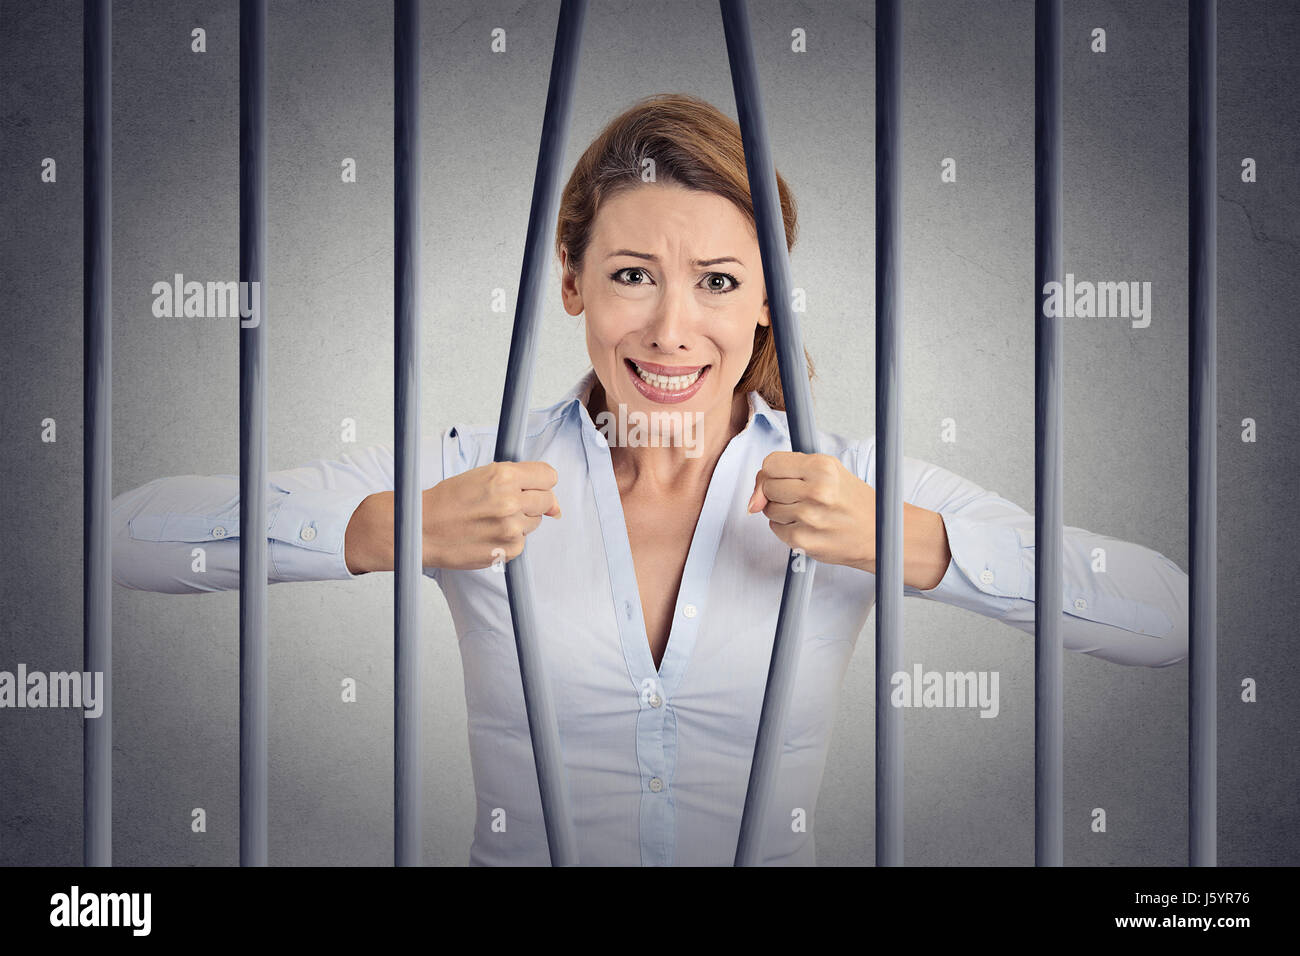 Stressed desperate angry businesswoman bending bars of her prison cell grey wall background. Life limitations, law - Stock Image